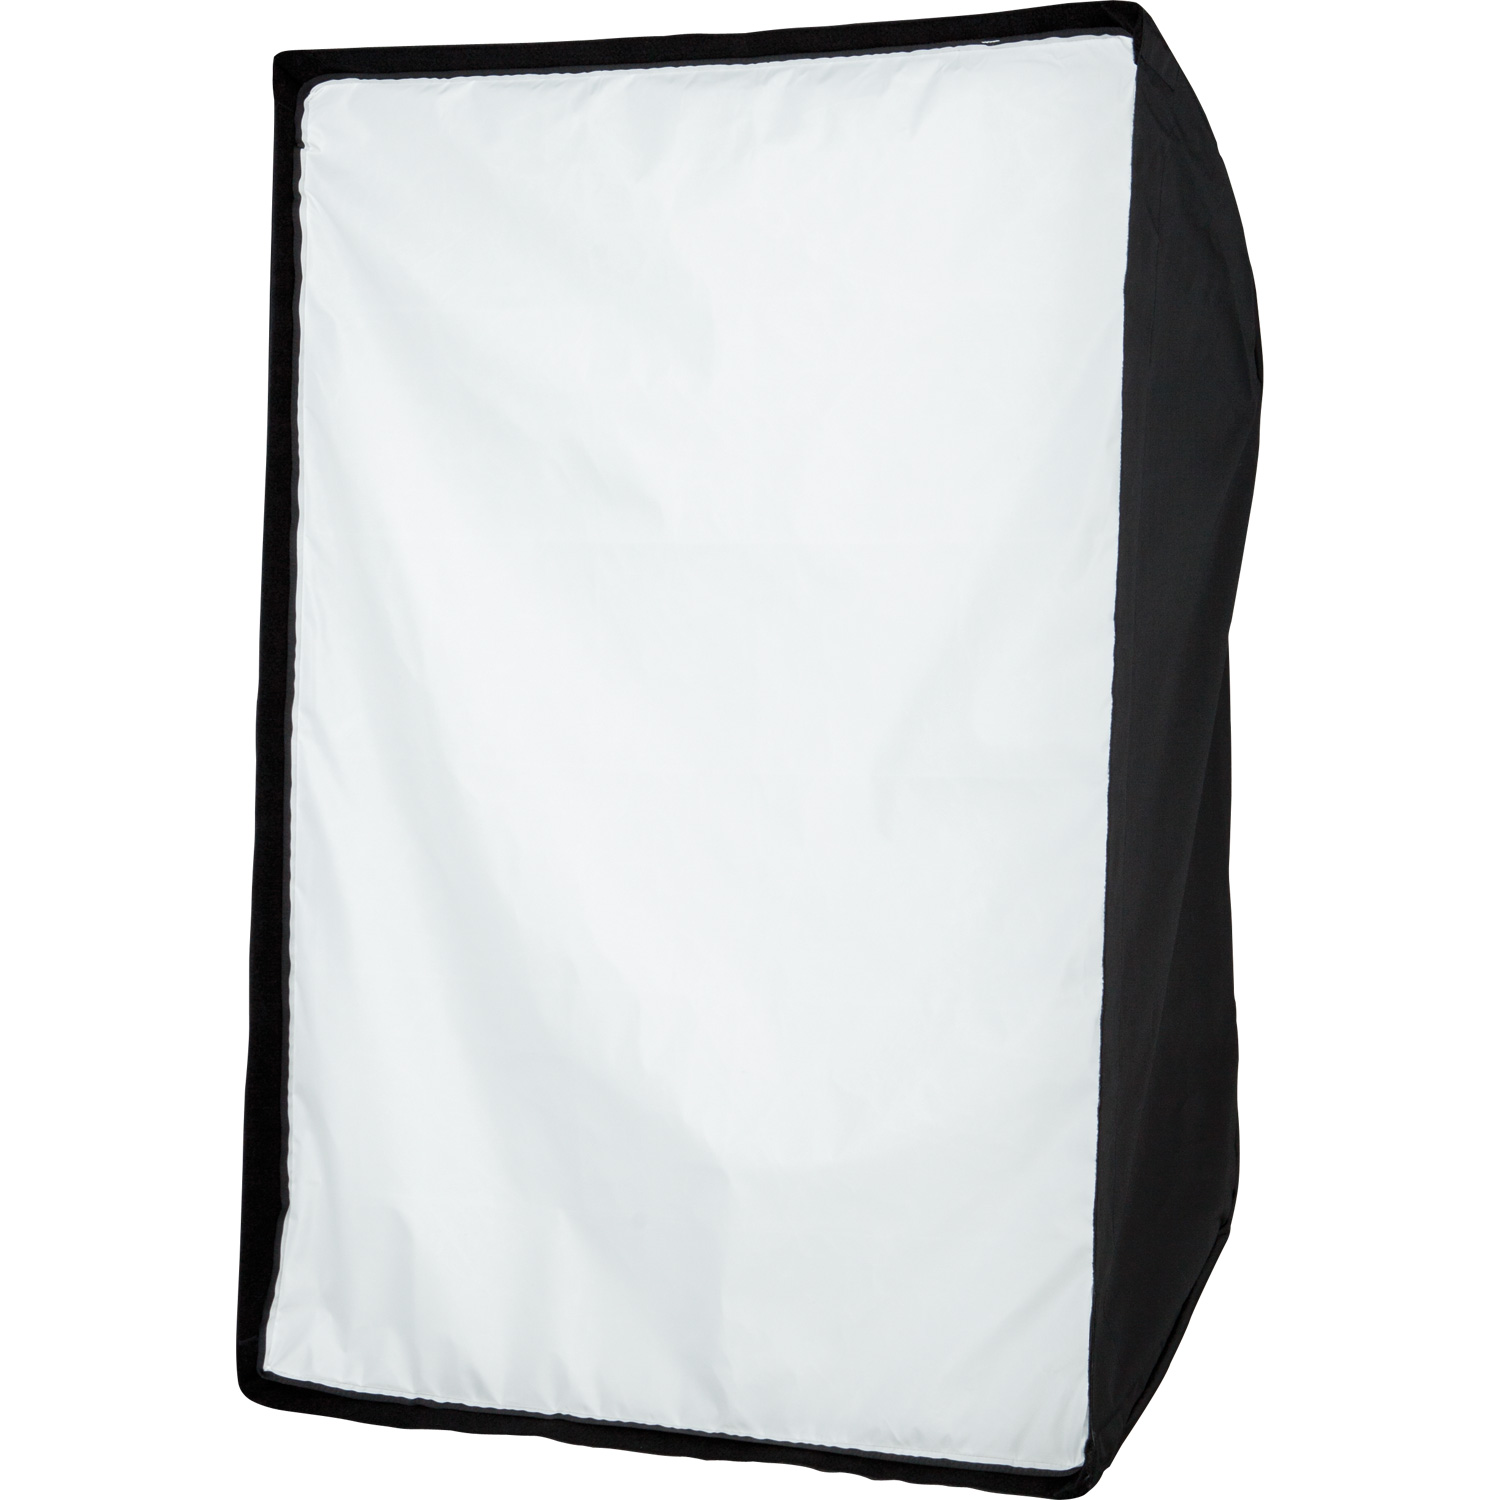 36-in. x 48-in. Pro Softbox